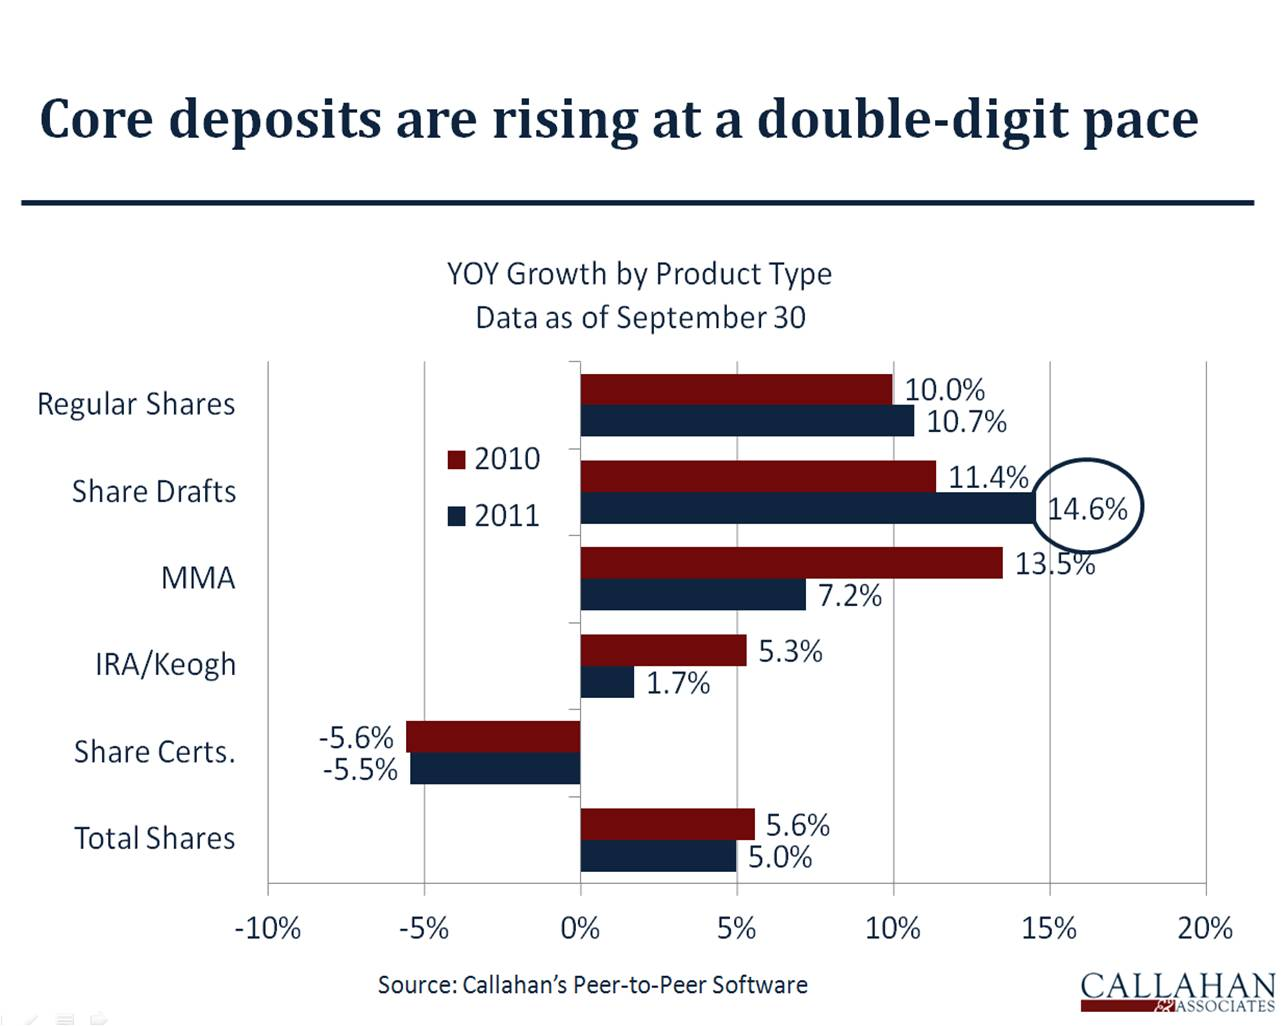 3Q 2011 YOY Core Deposit Growth